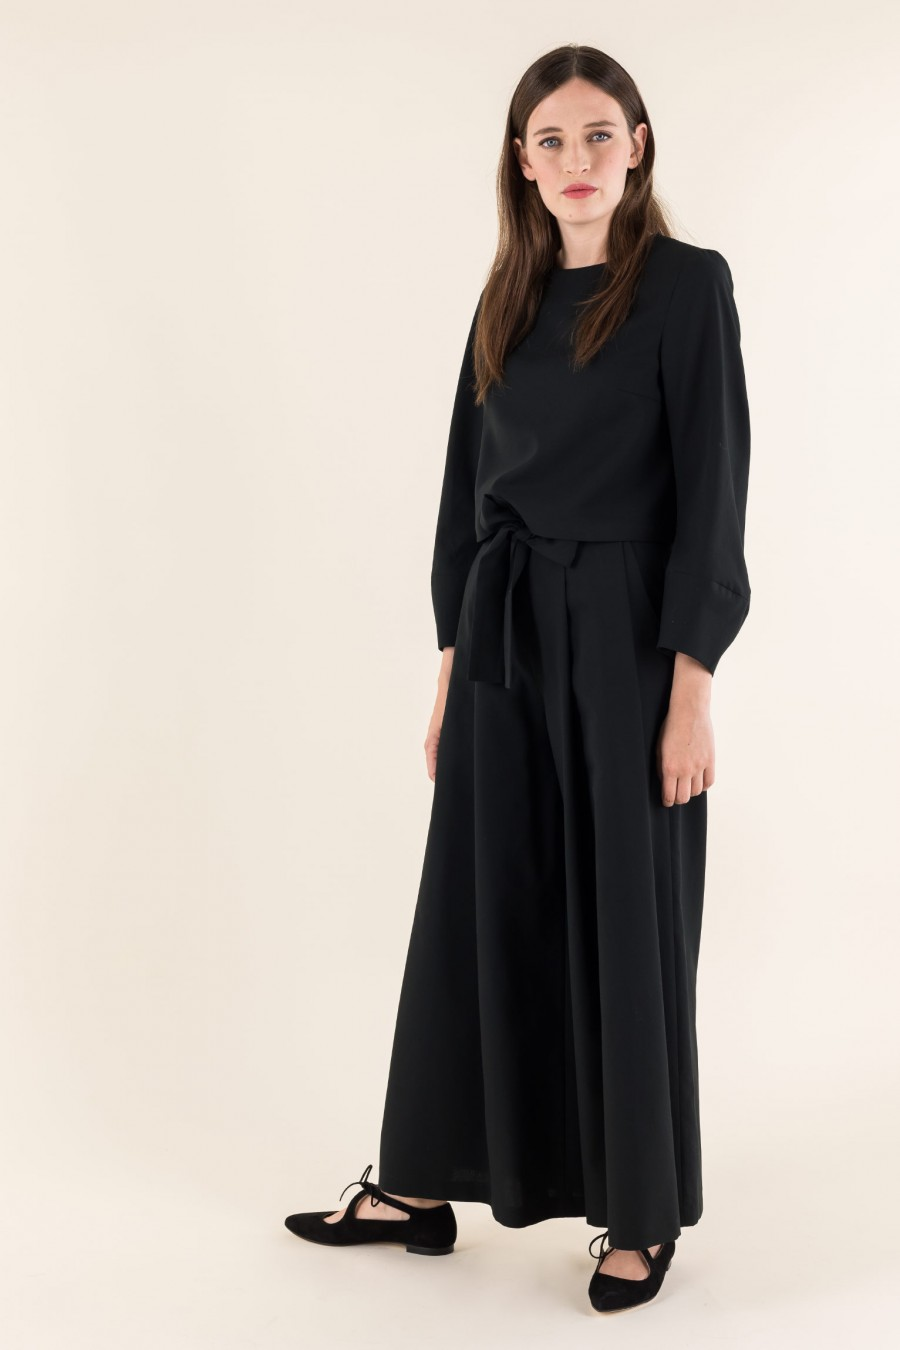 Comfy top with built sleeves